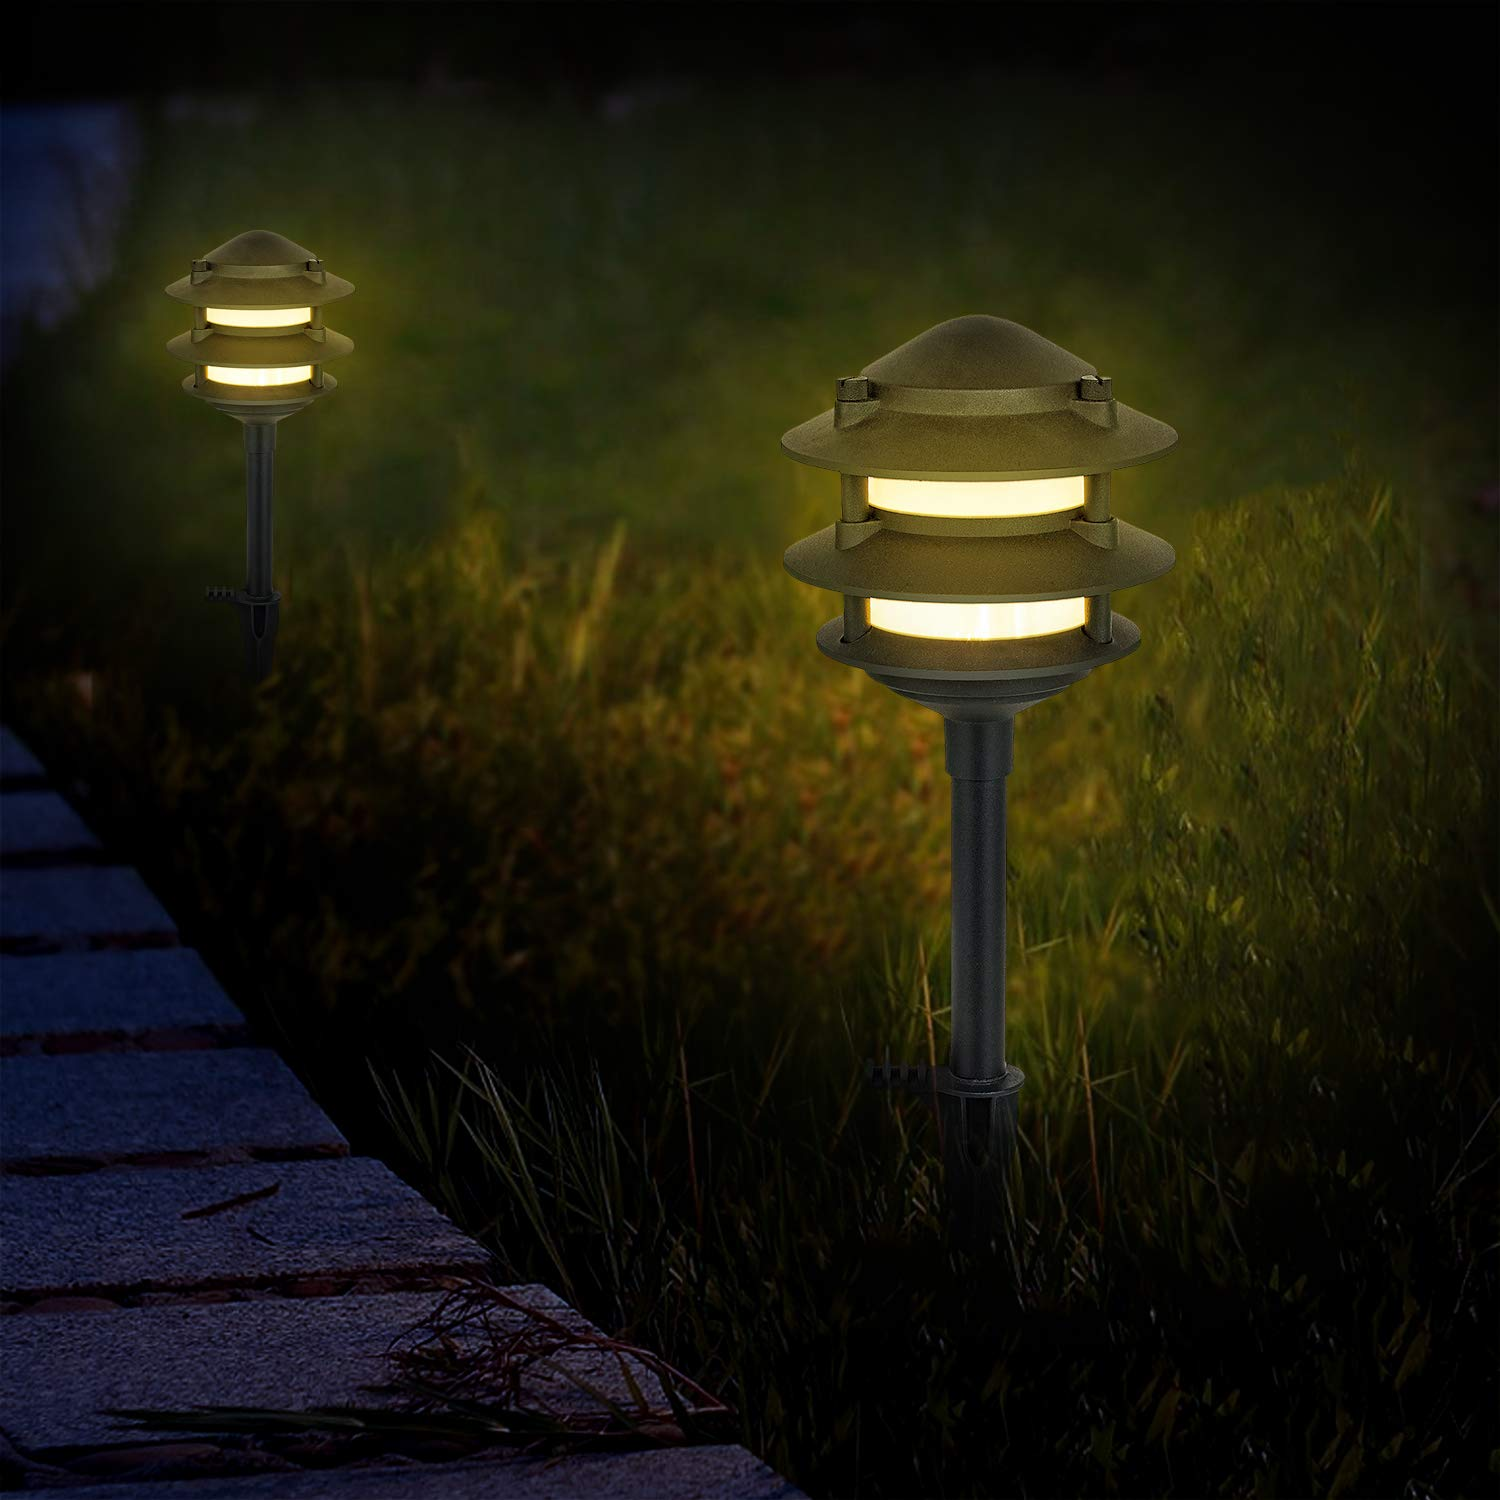 MOON BAY L03177-NA x 2 Pagoda Landscape Path Light, Low Volt 2W White LED, Waterproof for Outdoor Die-Cast Body and Frost Plastic Shade with Aluminum Spike, (2pack, Matt Black